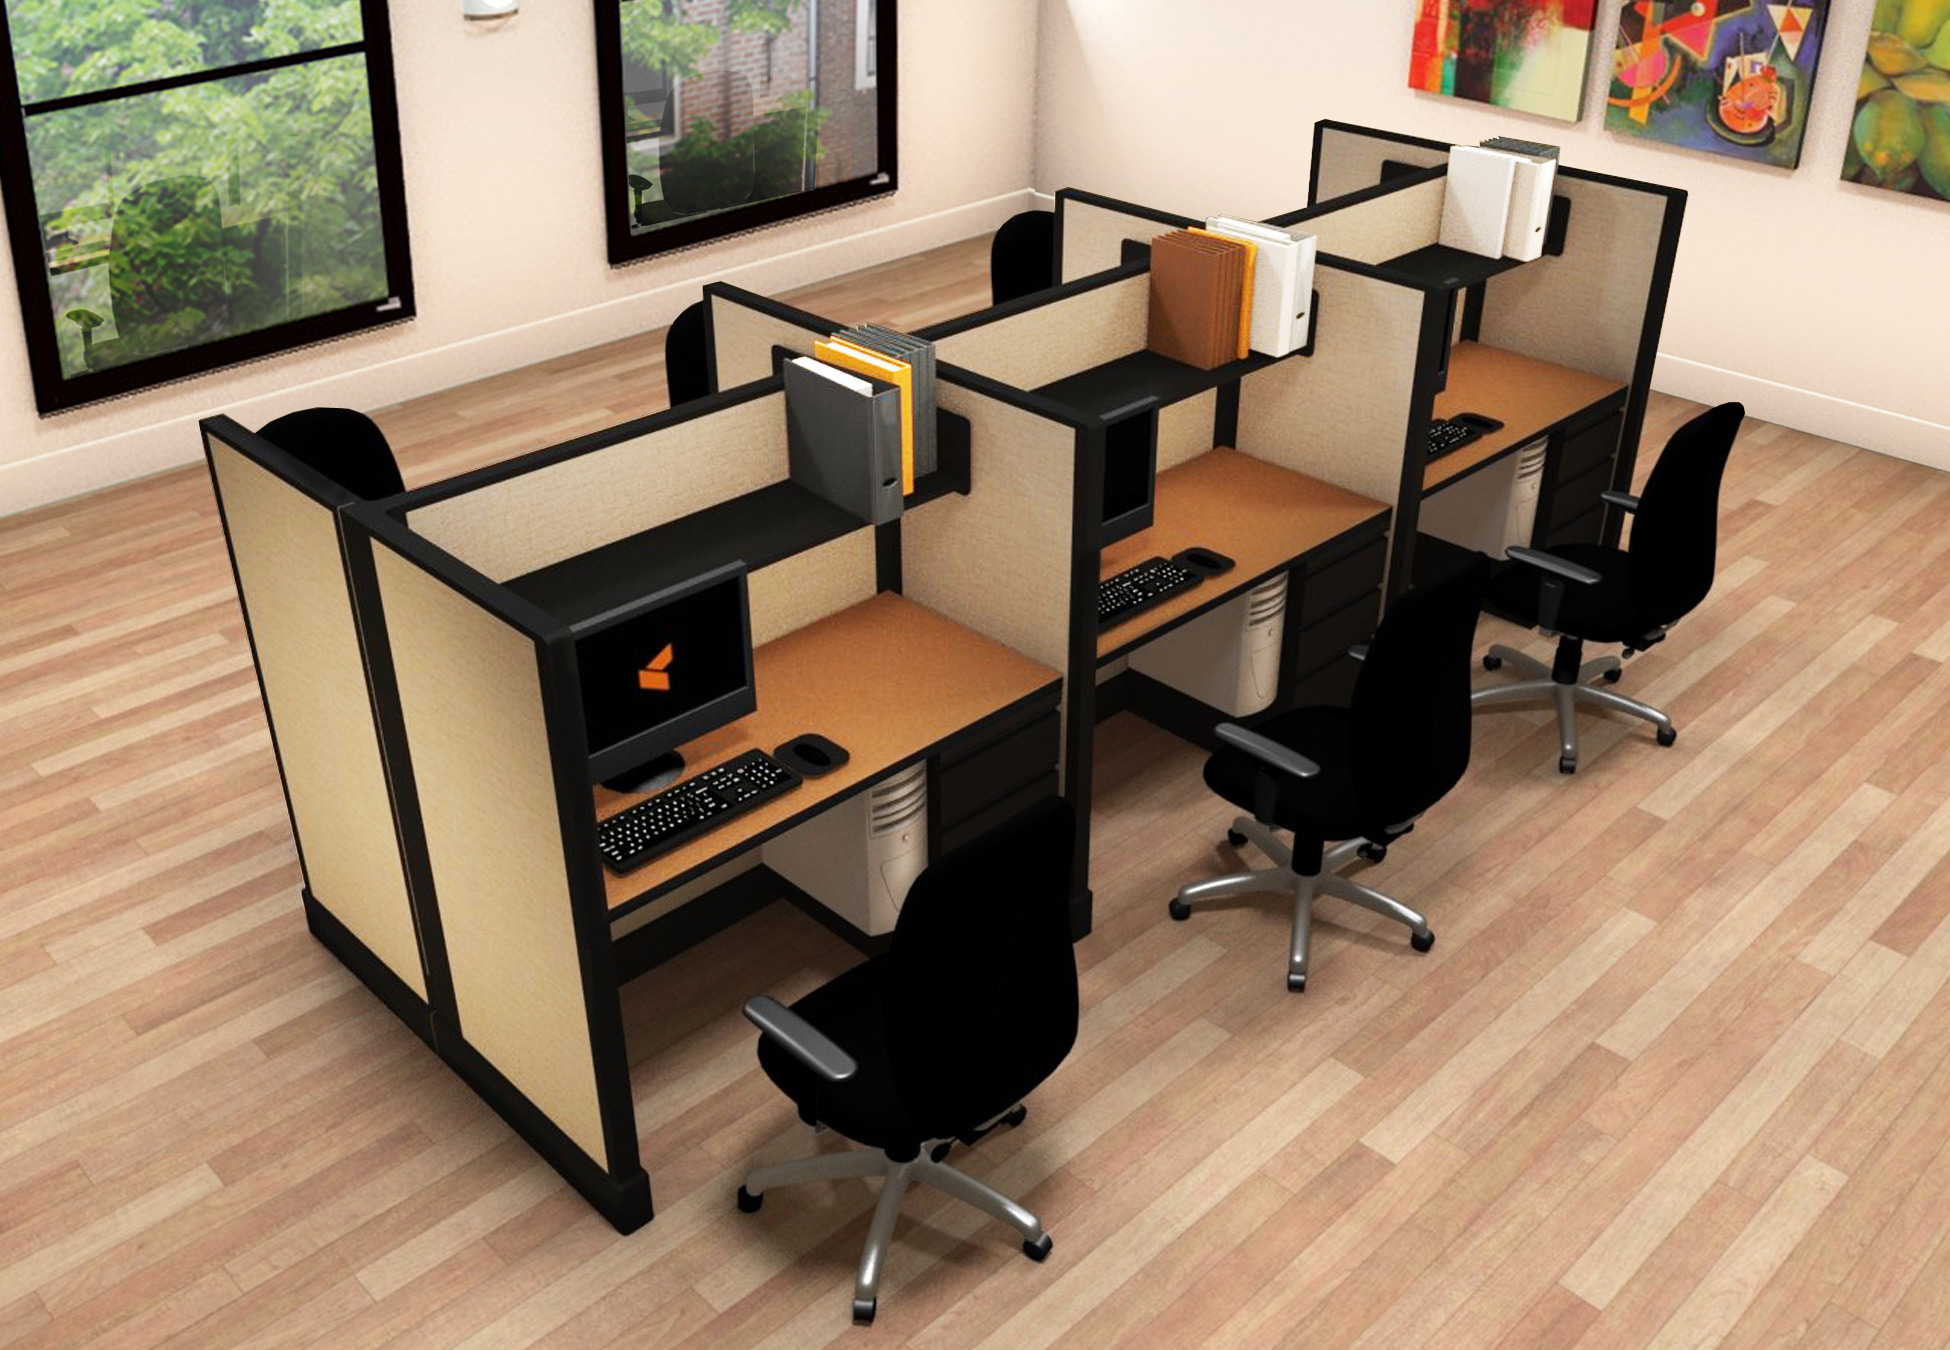 2x4 Small Office Cubicles - 6 Pack Cluster